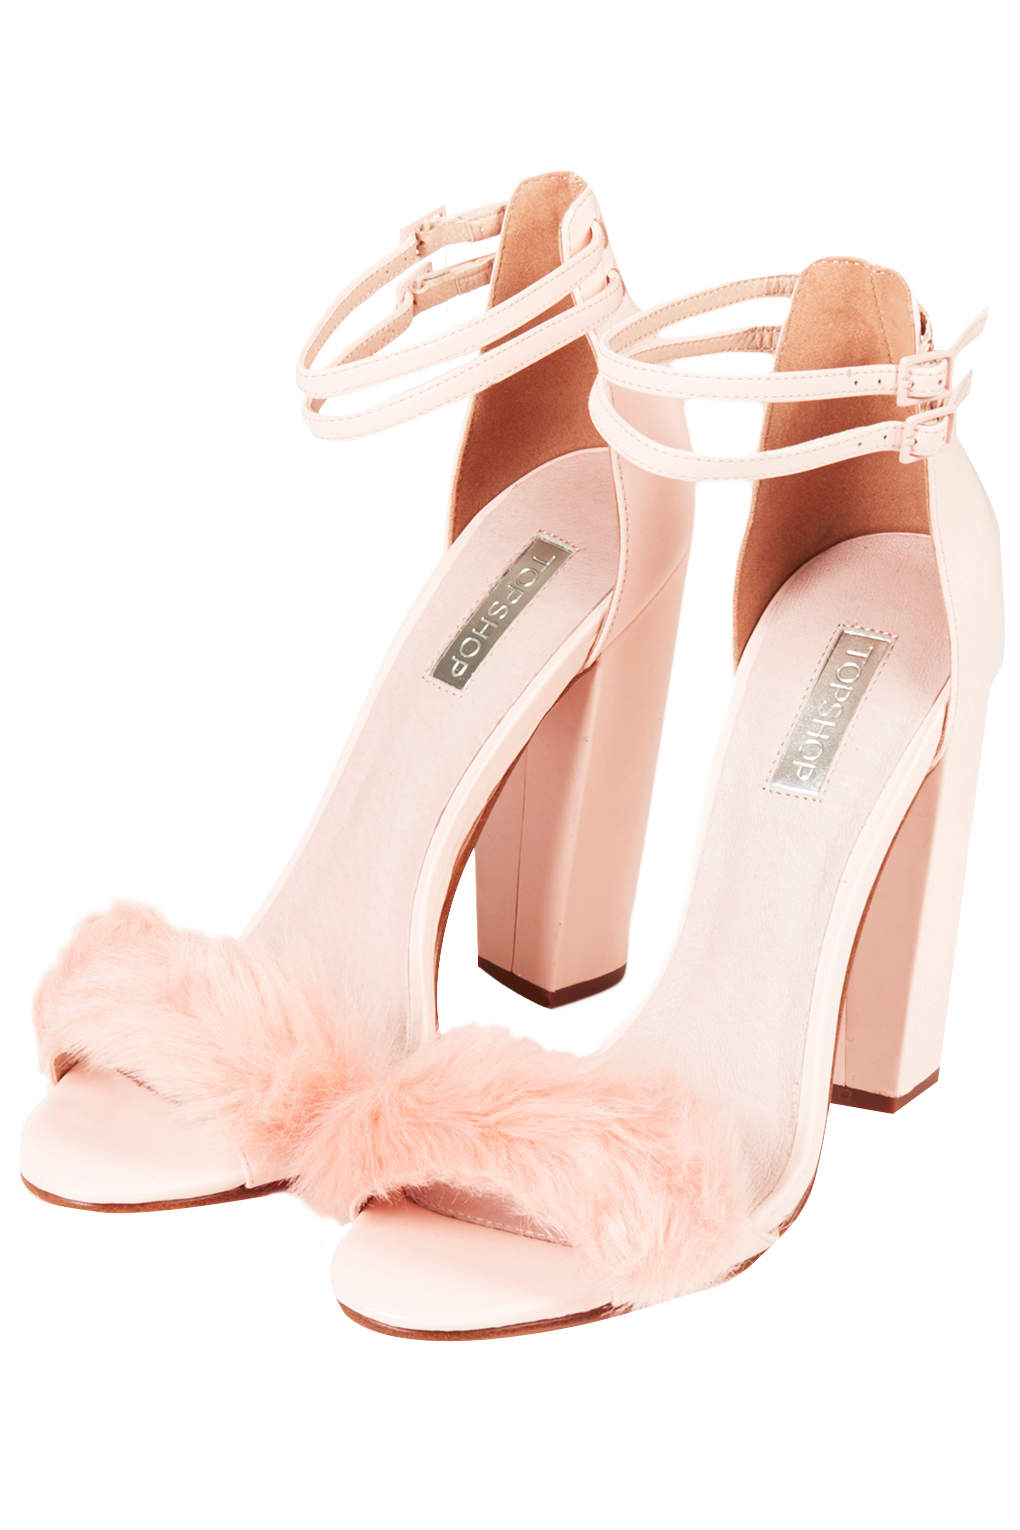 Topshop Rabbit Faux-Fur Fluffy Sandals in Pink | Lyst